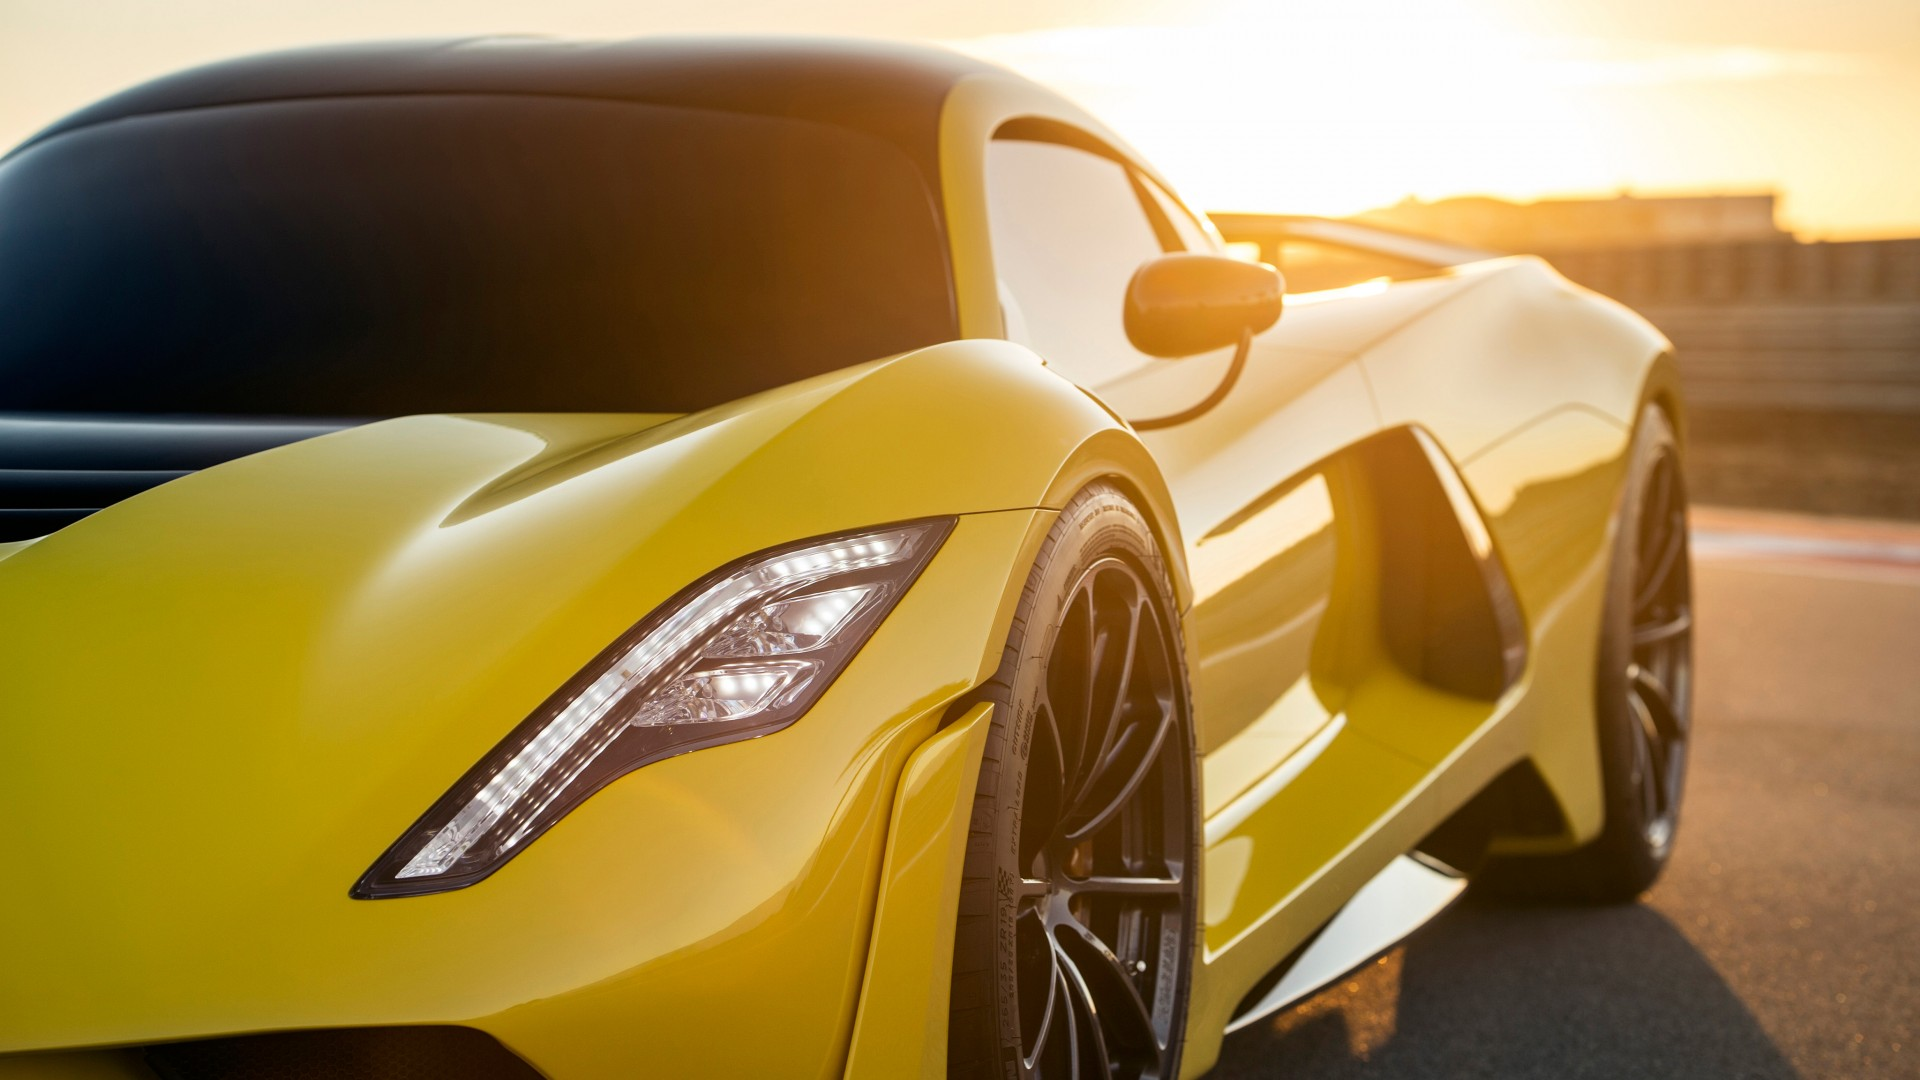 Fastest Car In The World Wallpaper 2015 2019 Hennessey Venom F5 4k Wallpaper Hd Car Wallpapers